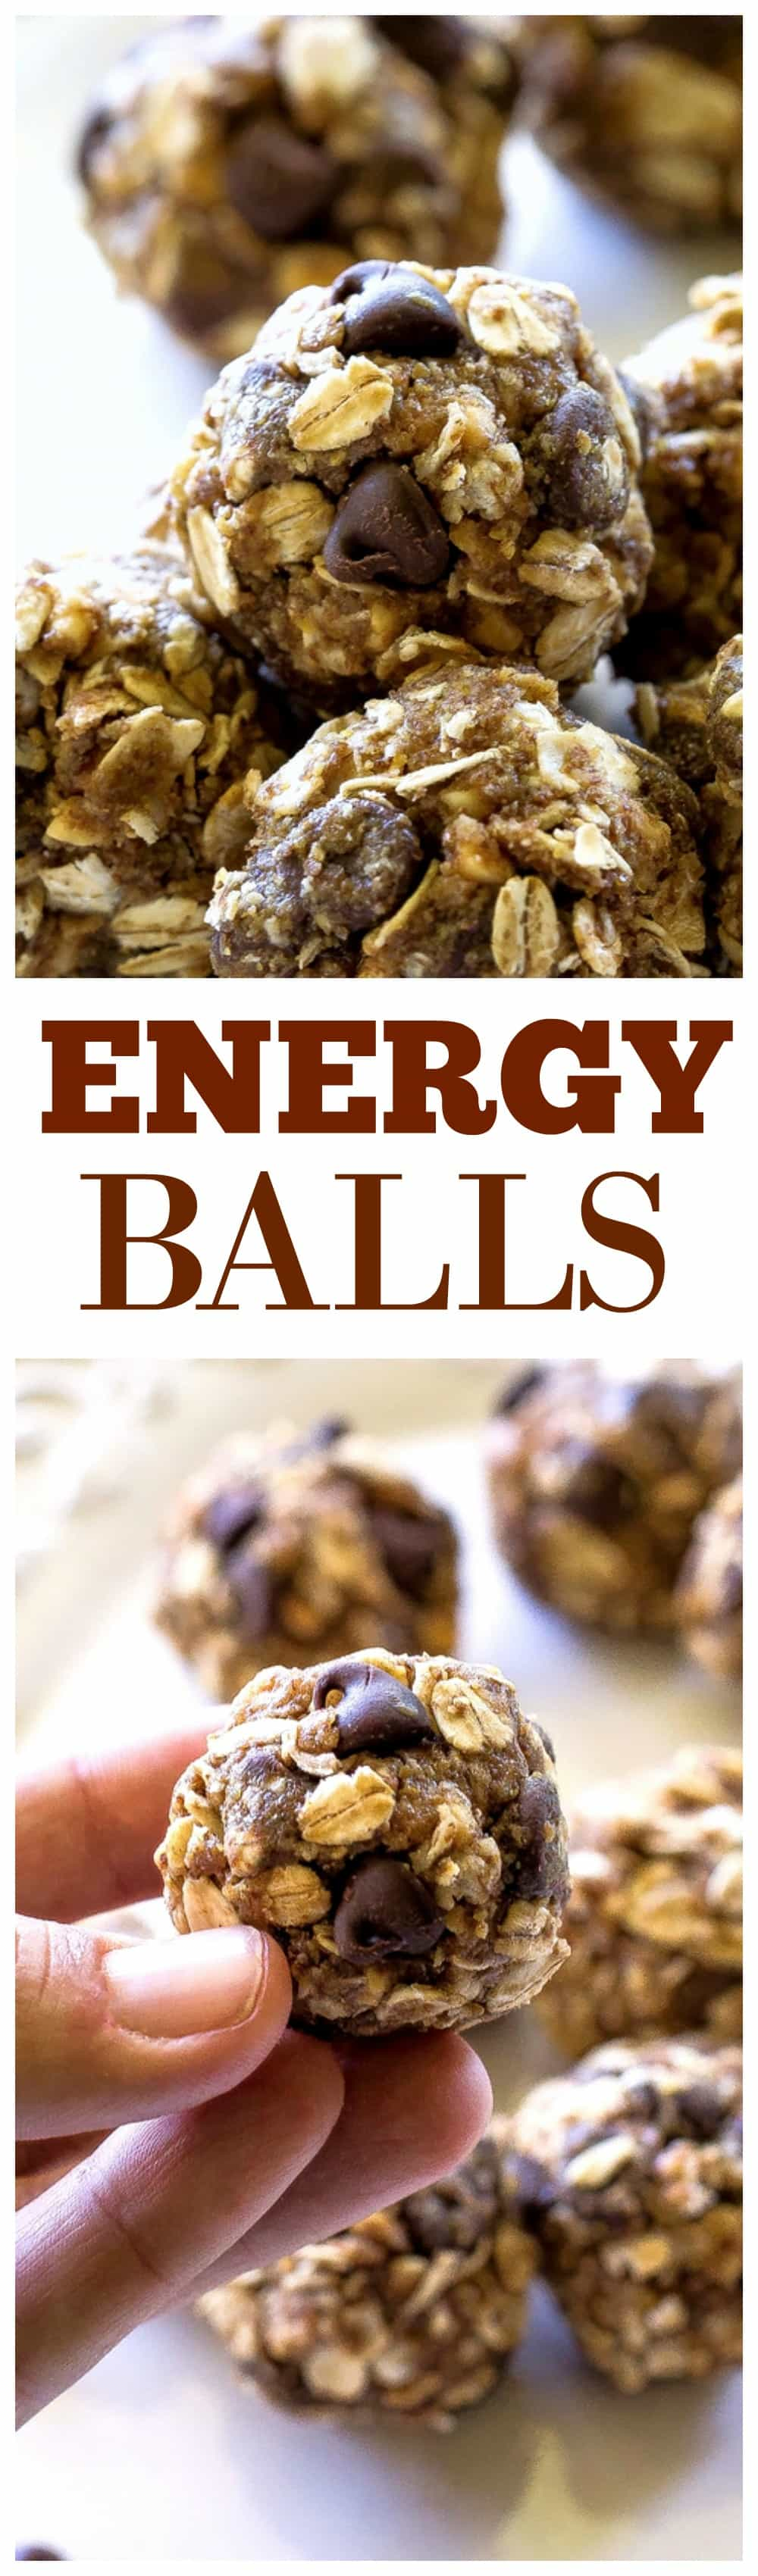 Easy Energy Balls - oats, honey, flaxseed, peanut butter, and a few chocolate chips. We make this easy snack once a week at least! #energy #balls #healthy #snack